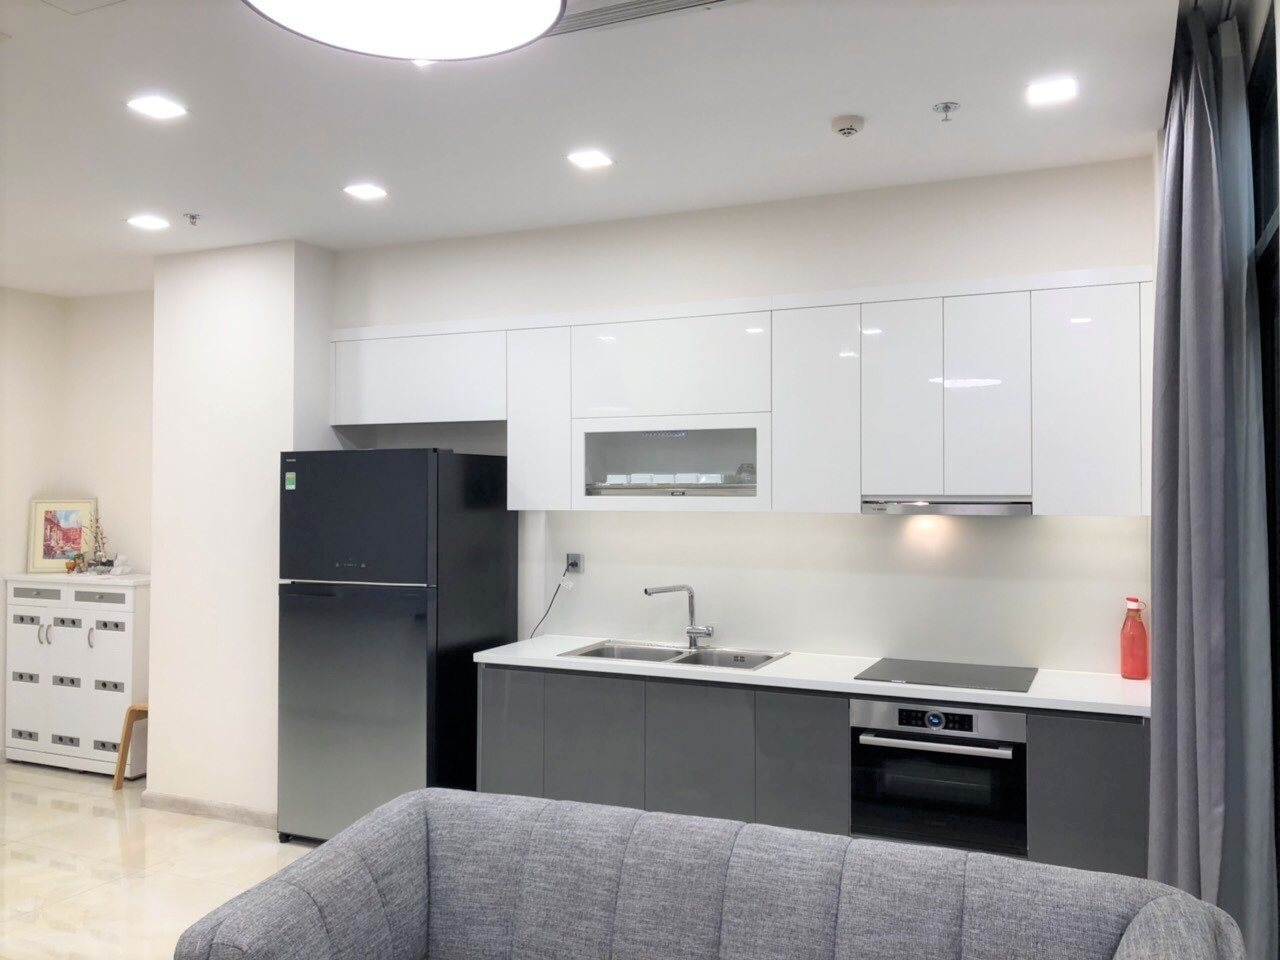 D1021153 - Vinhomes Golden River Apartment For Rent & Sale Ho Chi Minh - 2 bedroom